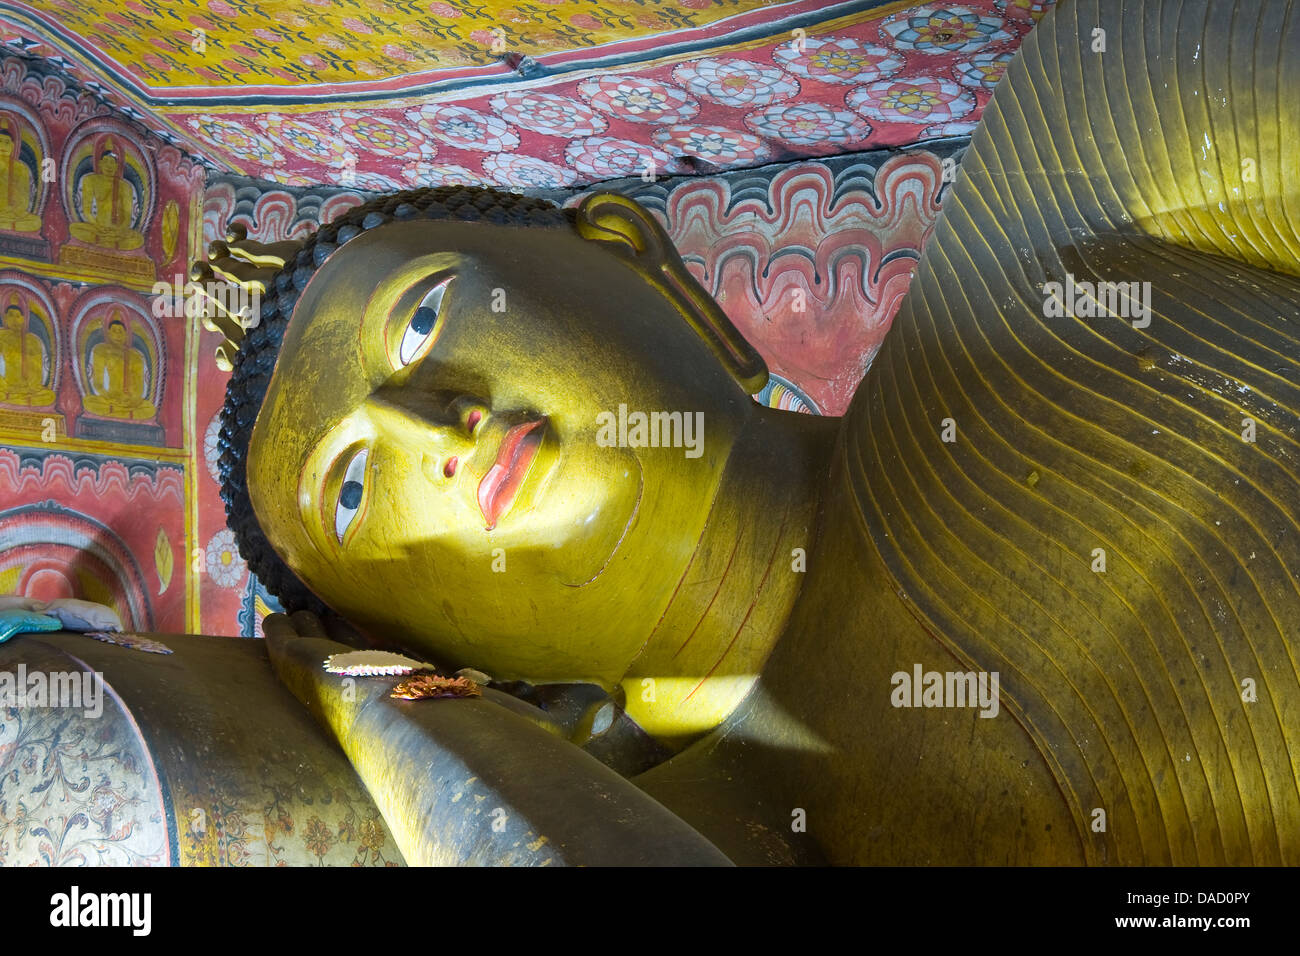 Asia, Sri Lanka, Central Province , Dambulla,Golden Temple of Dambulla, Cave no. 4 - Stock Image